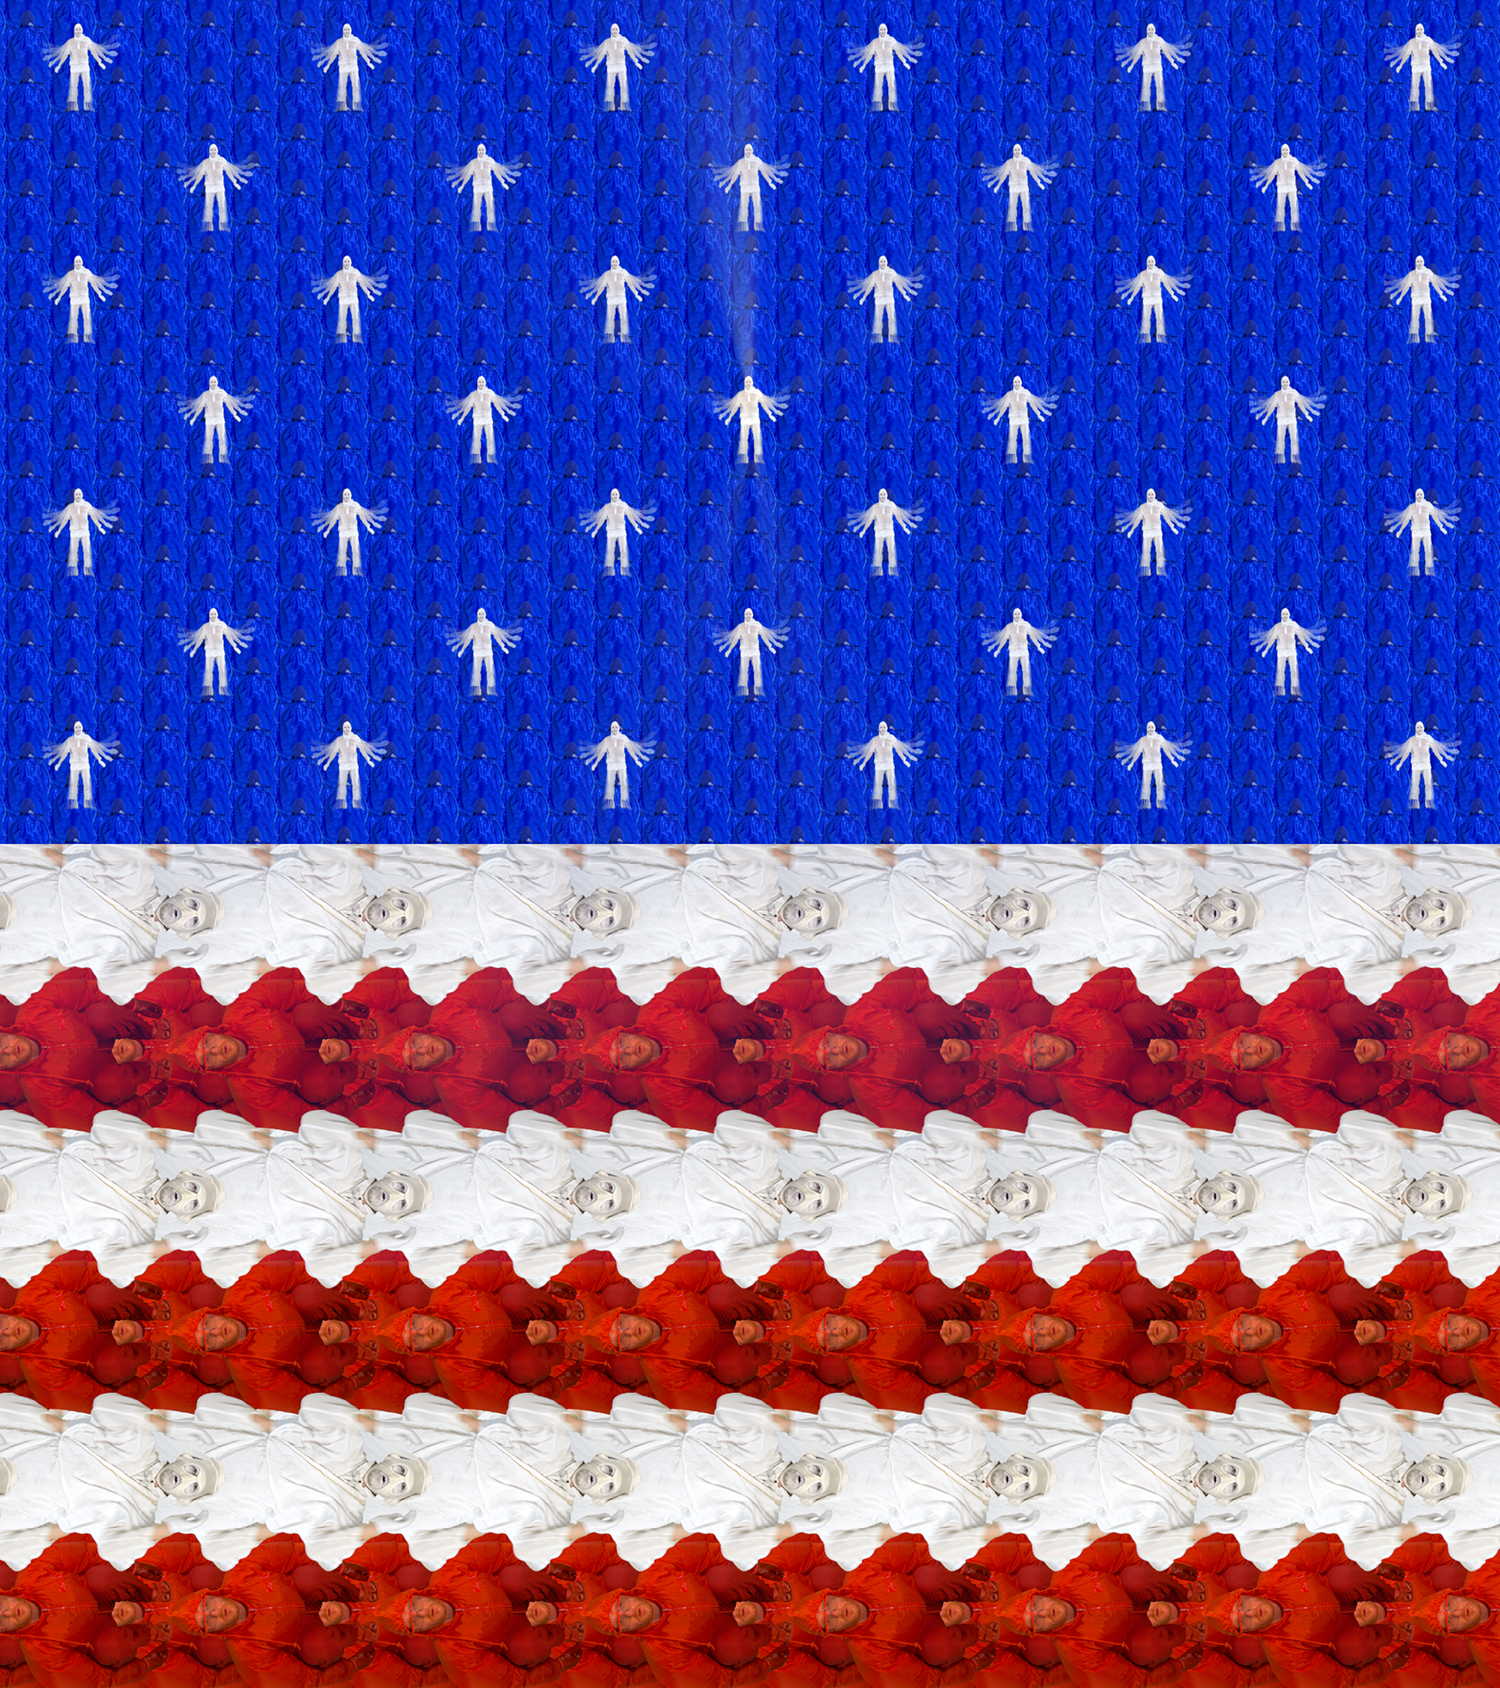 Heath Franco, LIFE IS SEXY (video still), 2016-17. Location performance videography by Jodie Whalen, image courtesy the artist